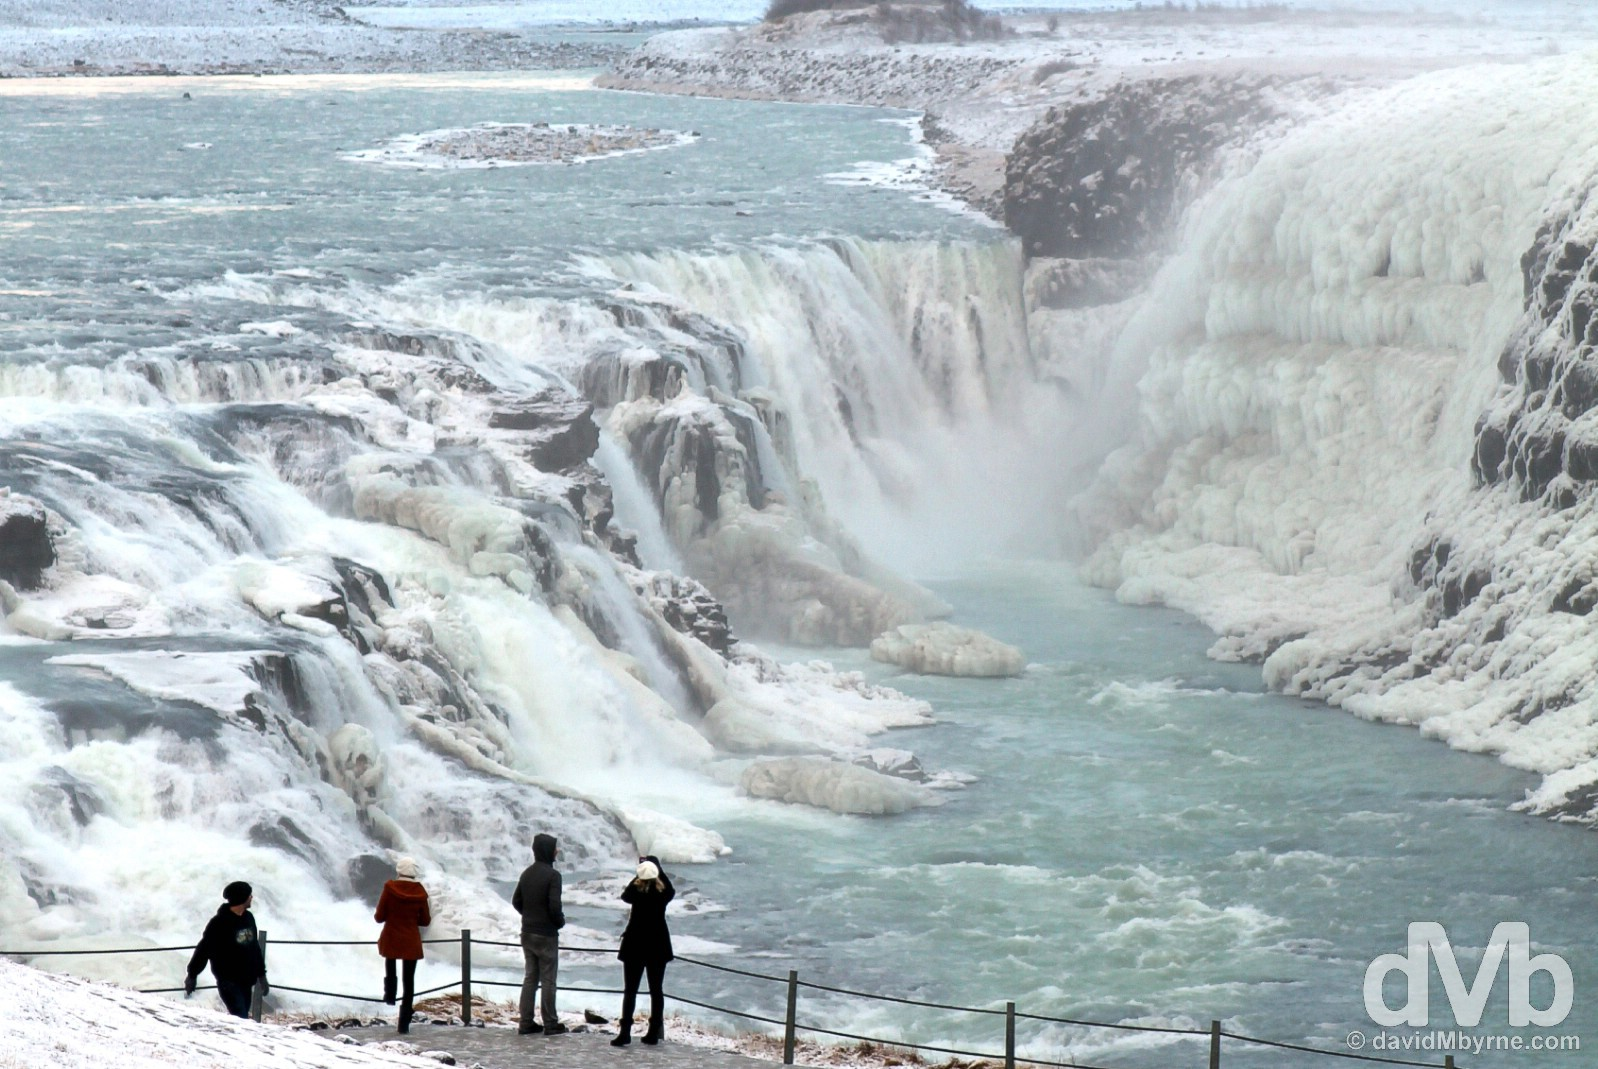 Overlooking the Gullfoss waterfall in south west Iceland. December 3, 2012.